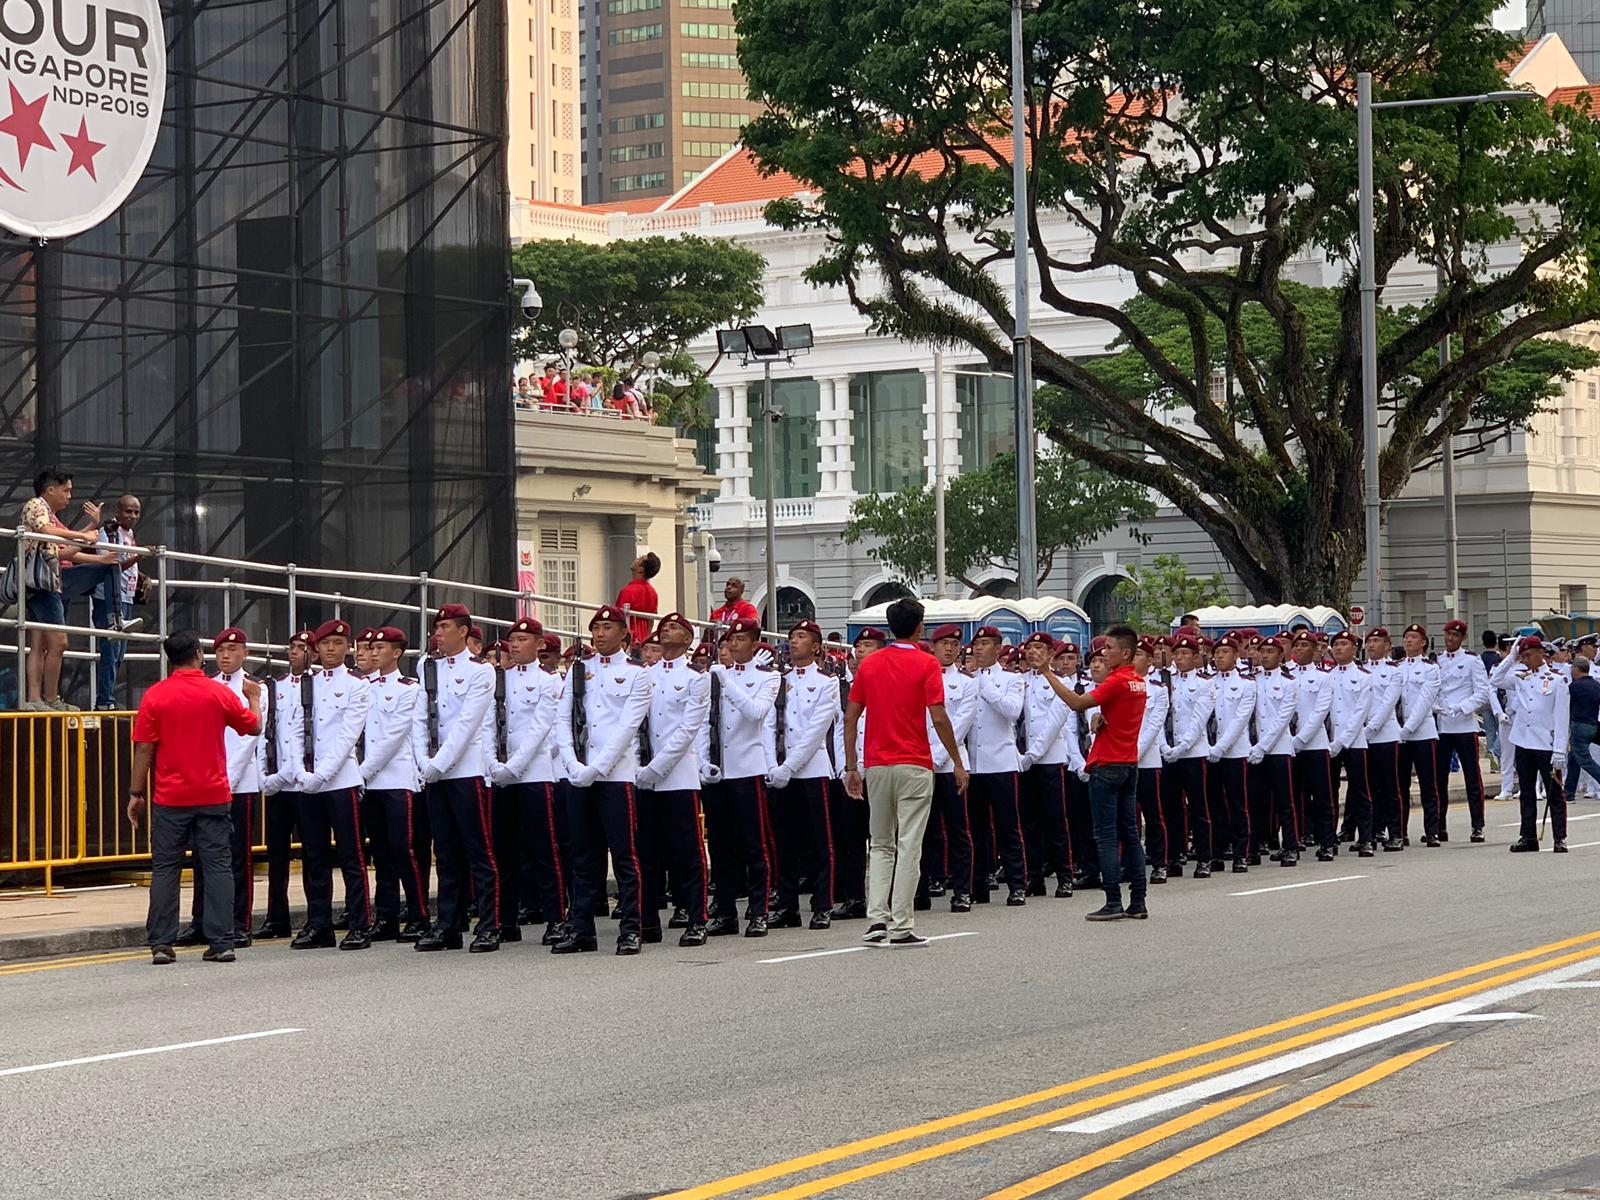 The theme of this year's National Day Parade is Our Singapore. Photo courtesy: Connected to India